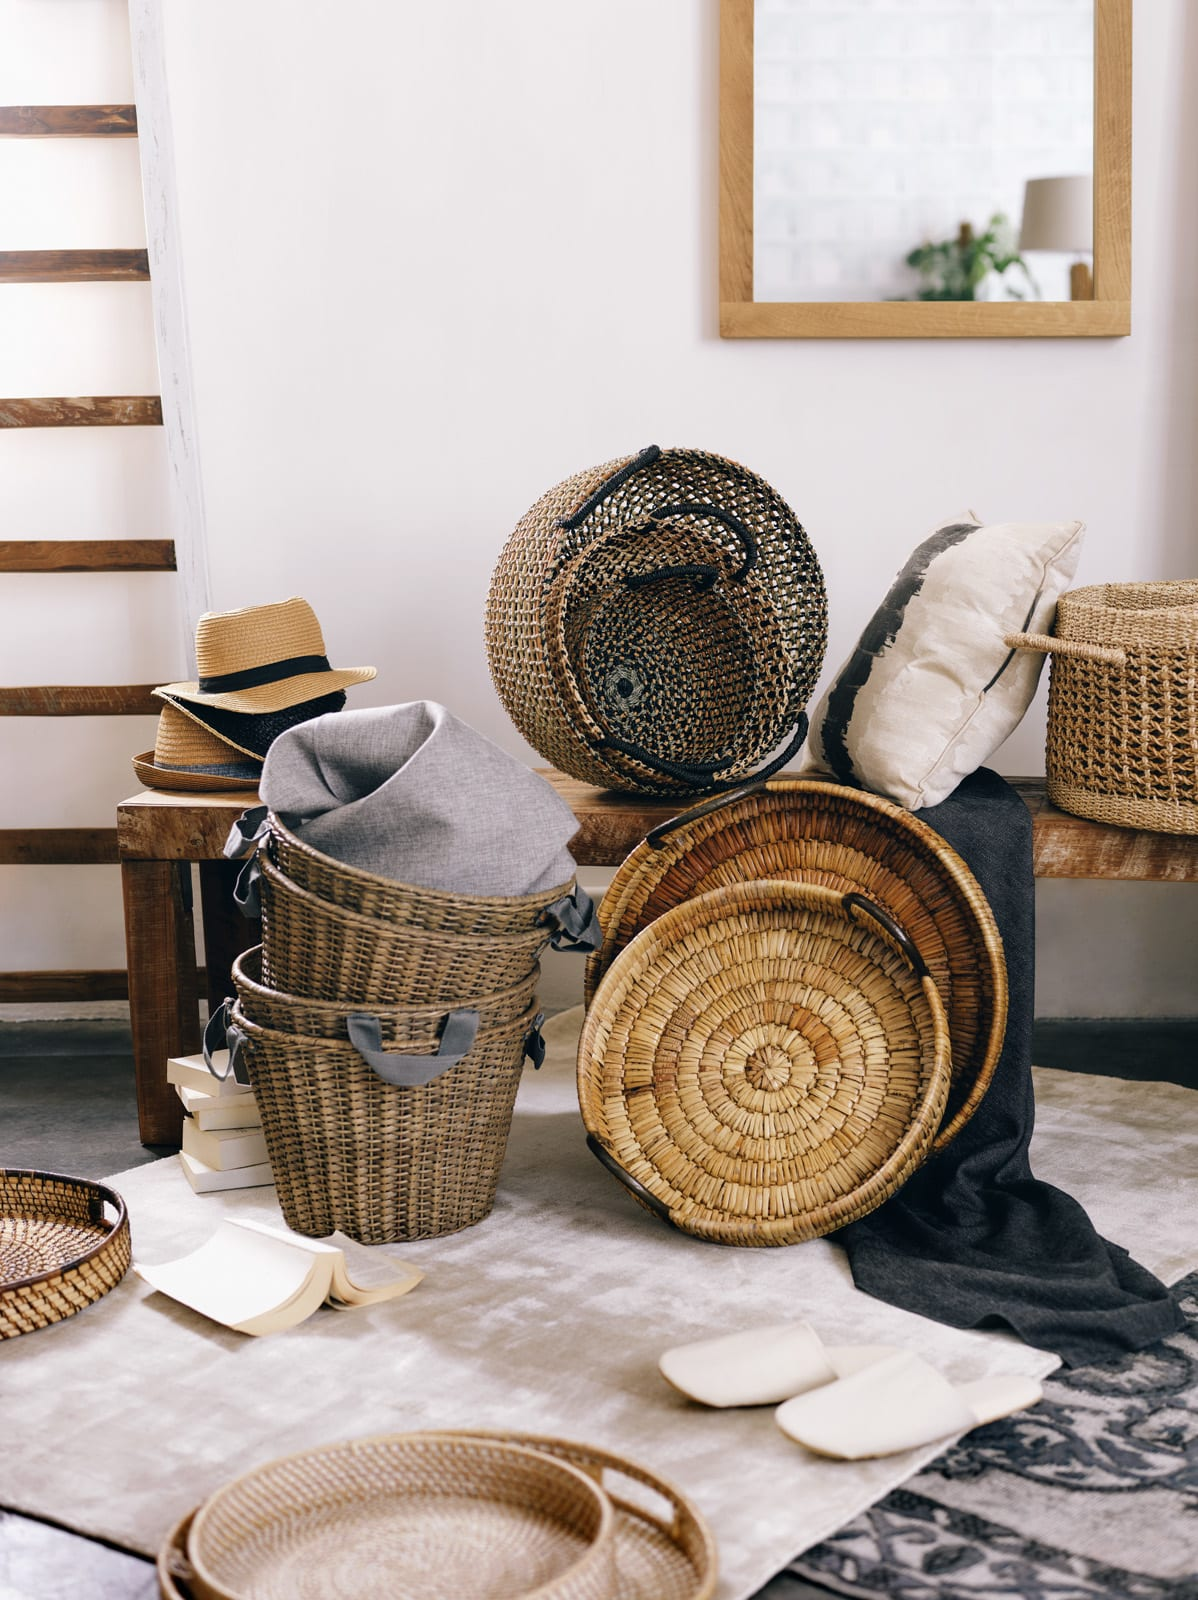 https://www.designidk.com/images/2285/tree-mar-2017-mothers-day-woven-baskets-varietyjpg